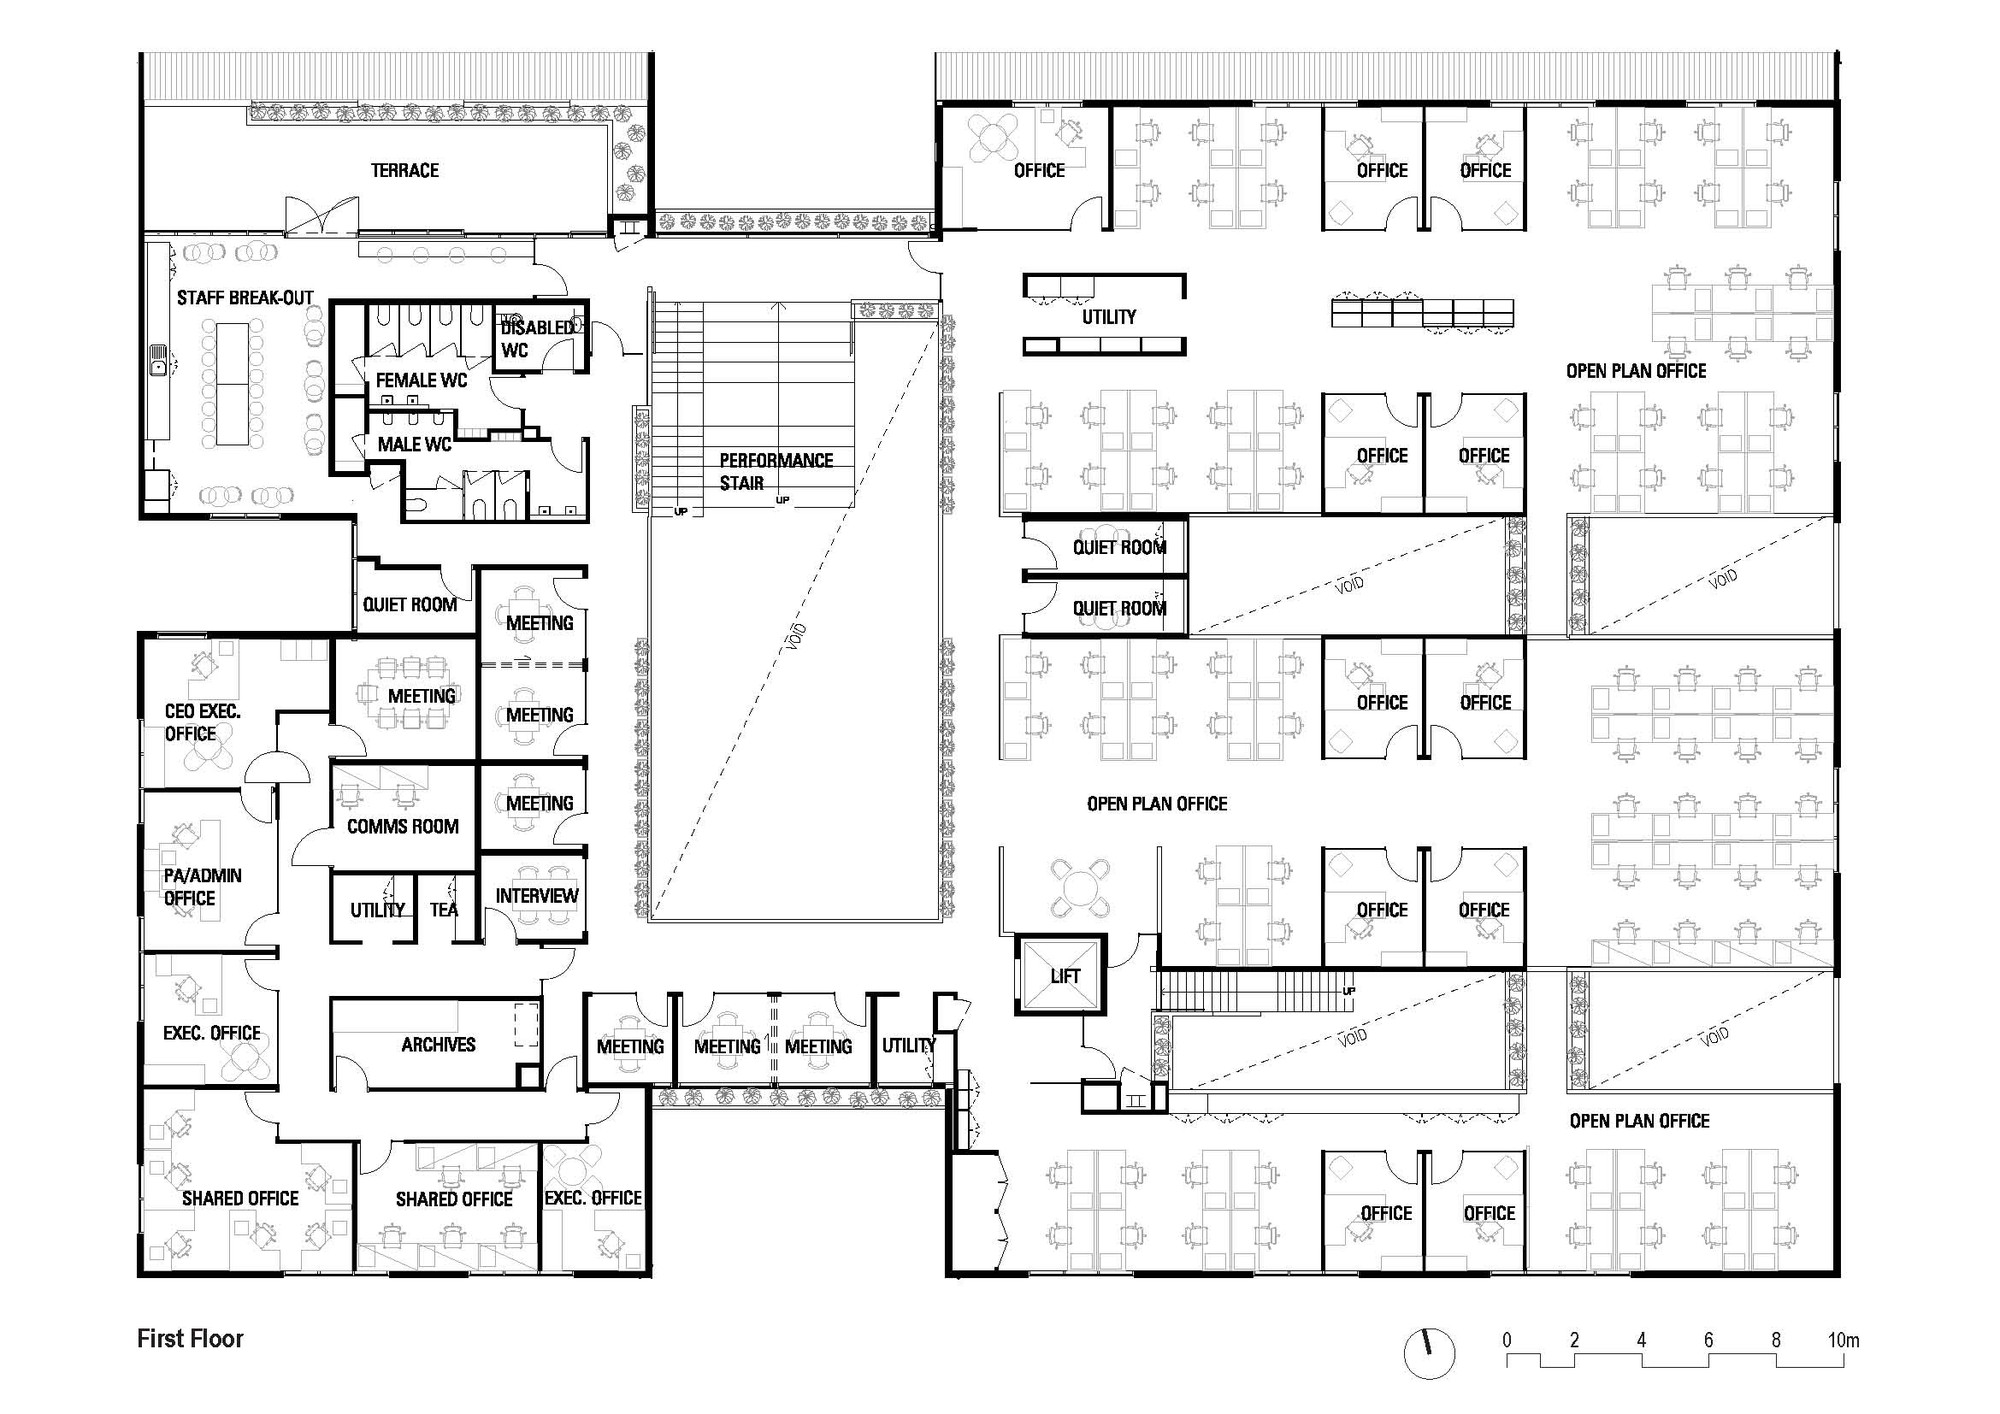 Pct Corridor Plan further Vital Albuquerque Class 01 also Insurance Agency Marketing Plans additionally Wall Decor For Pediatric Office likewise Index. on health care floor plan design